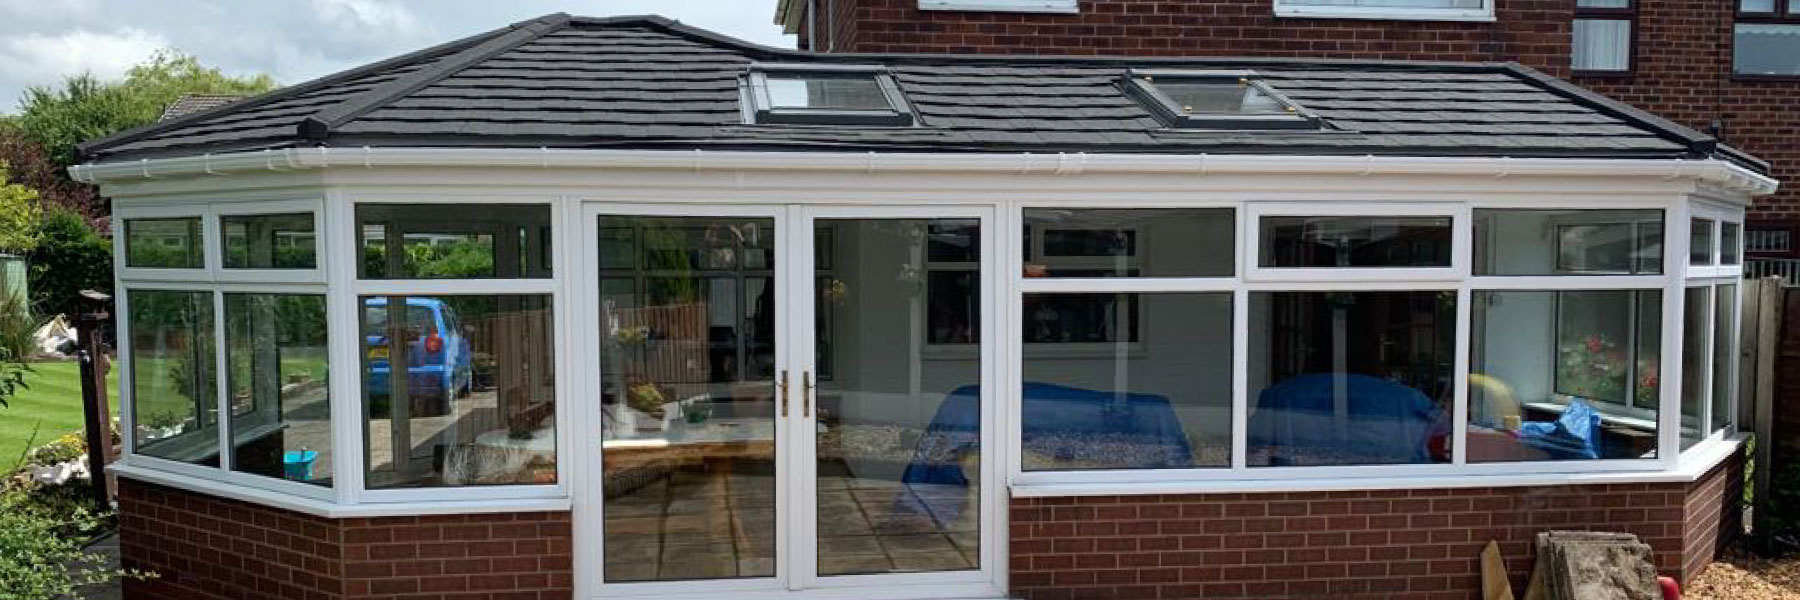 conservatory roof after replacement